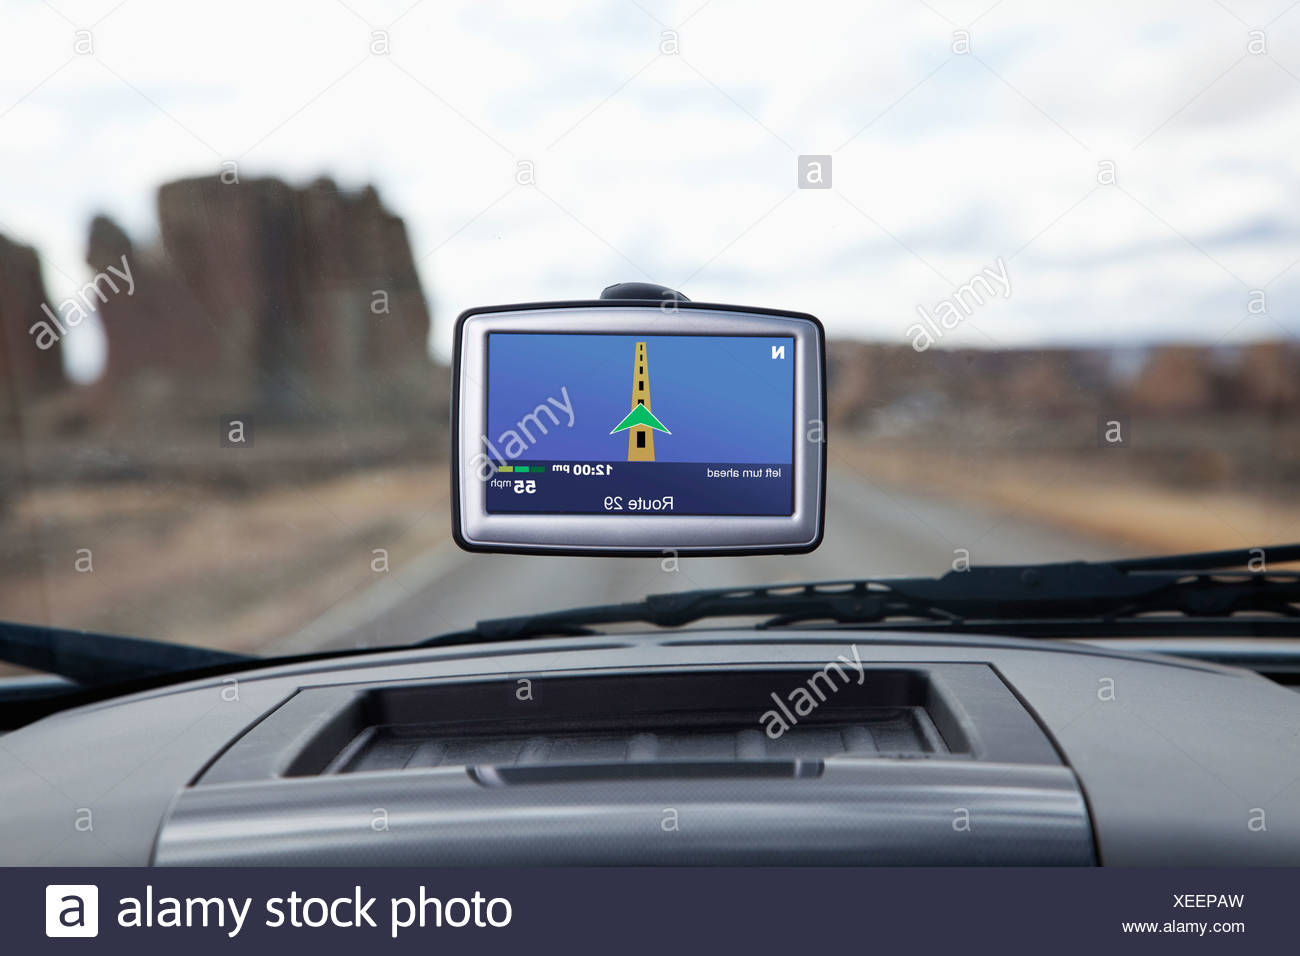 USA, New Mexico, automotive navigation system in car - Stock Image